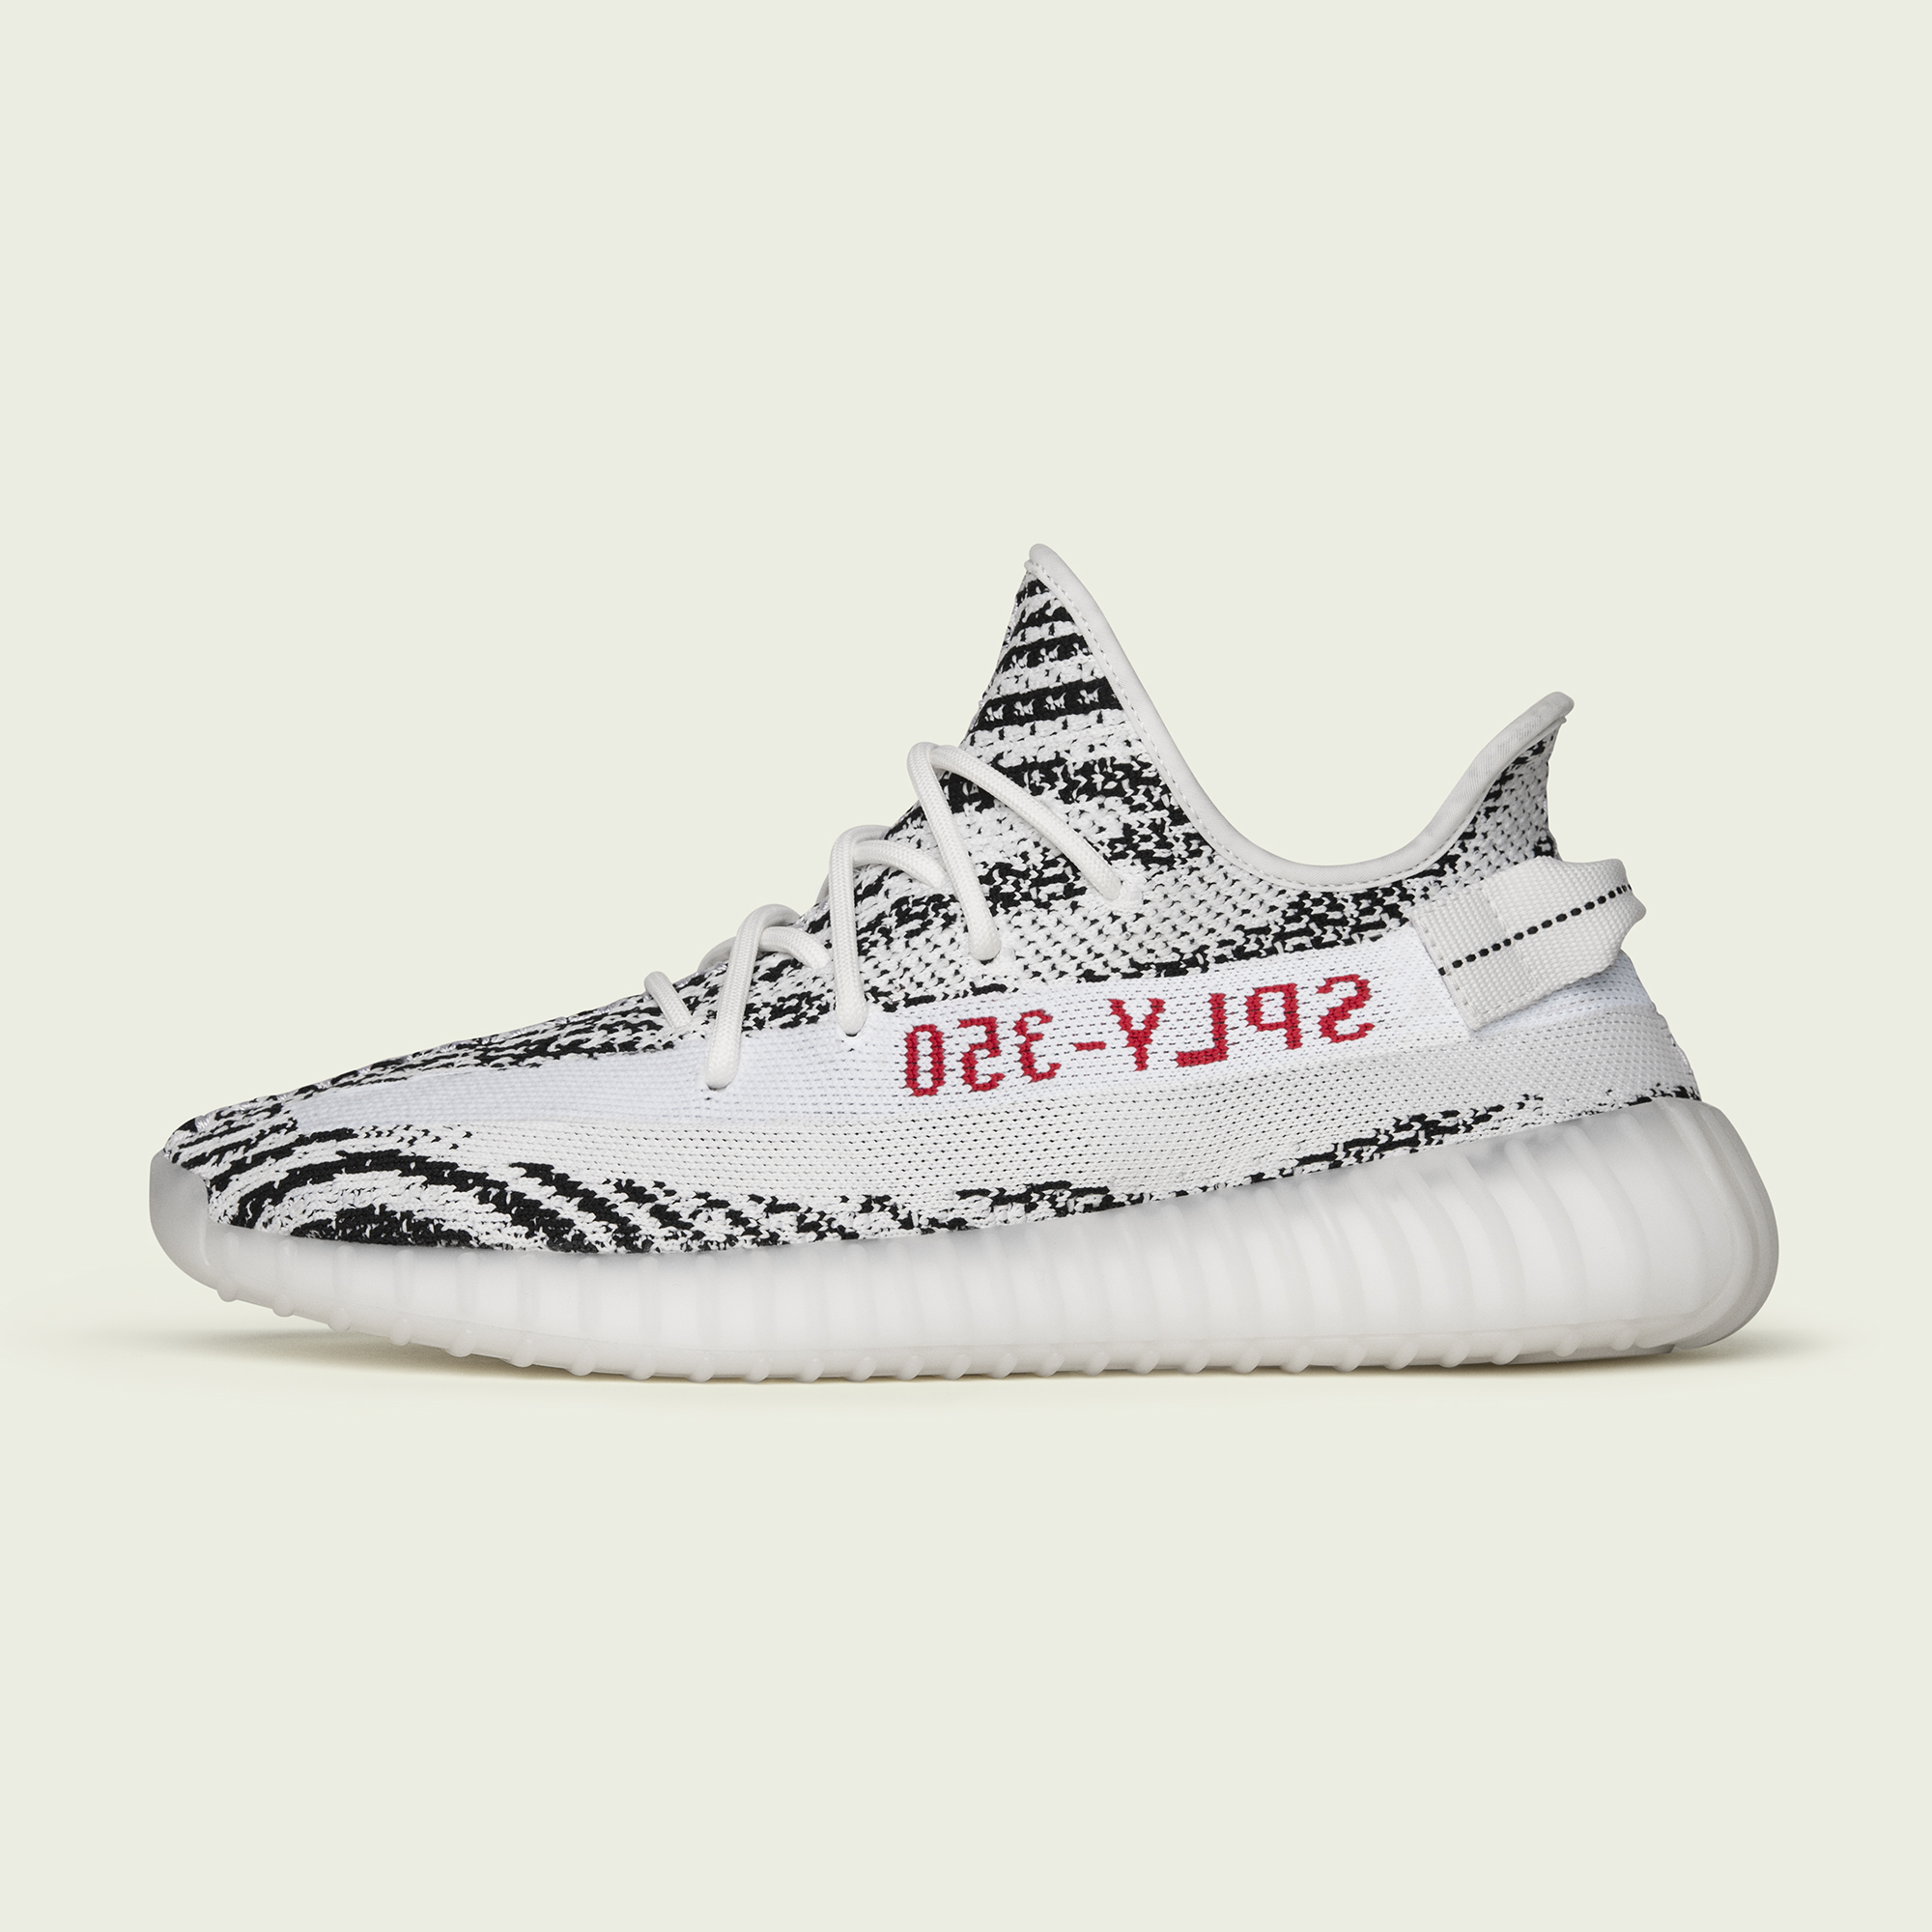 Online Store List: adidas Yeezy Boost 350 V2 Releasing at 10:00am